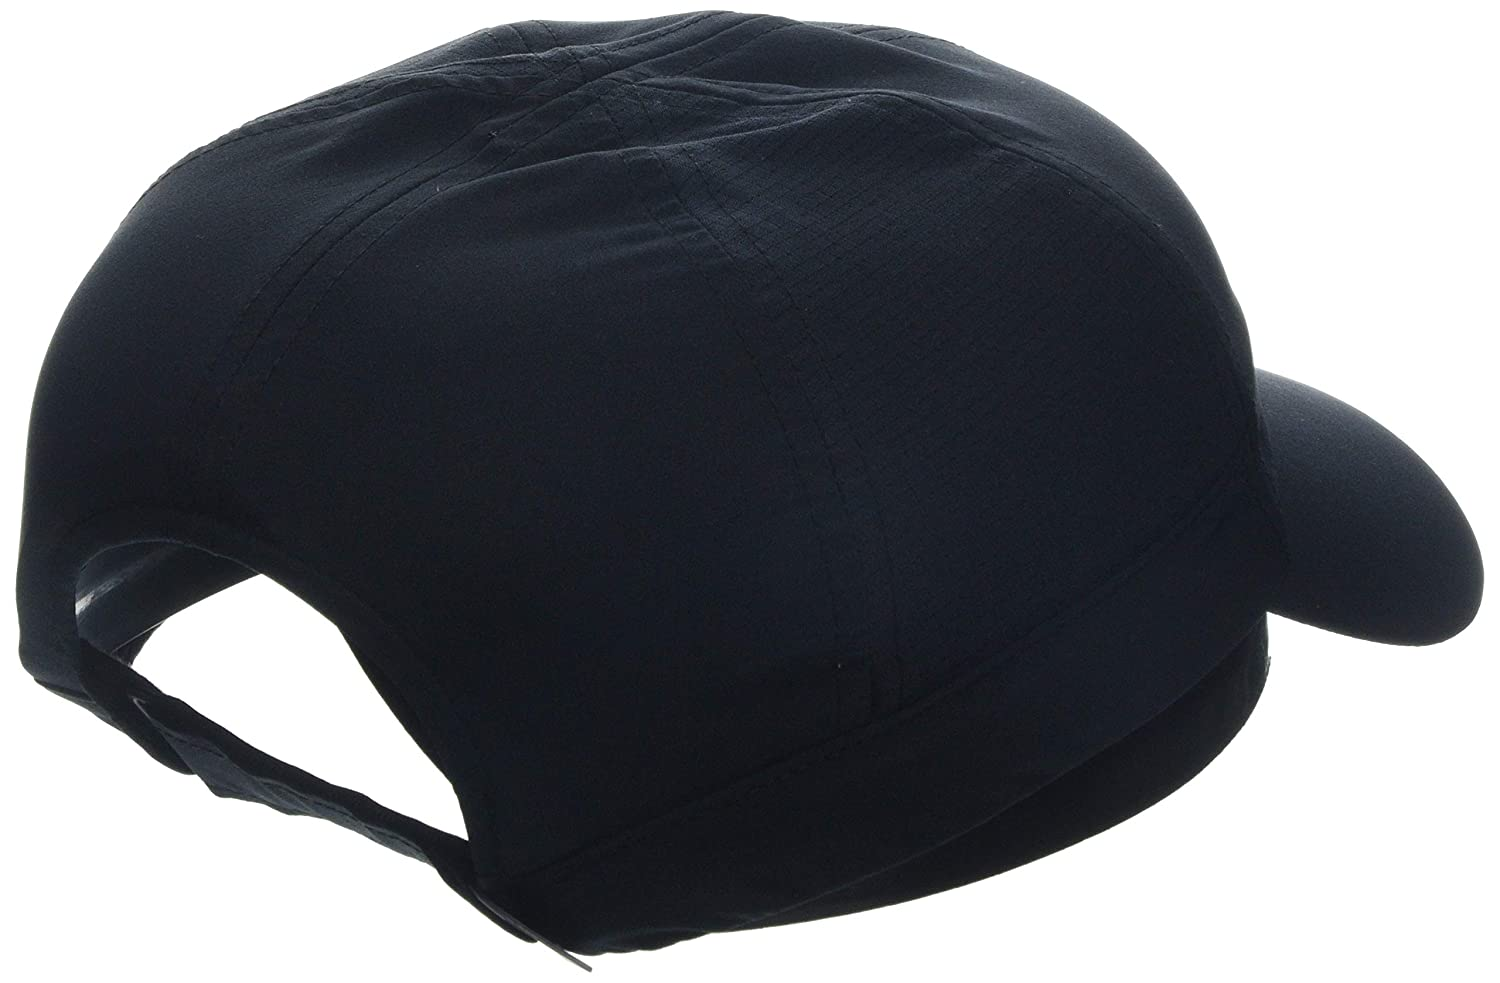 SS19 Under Armour Fly By cap